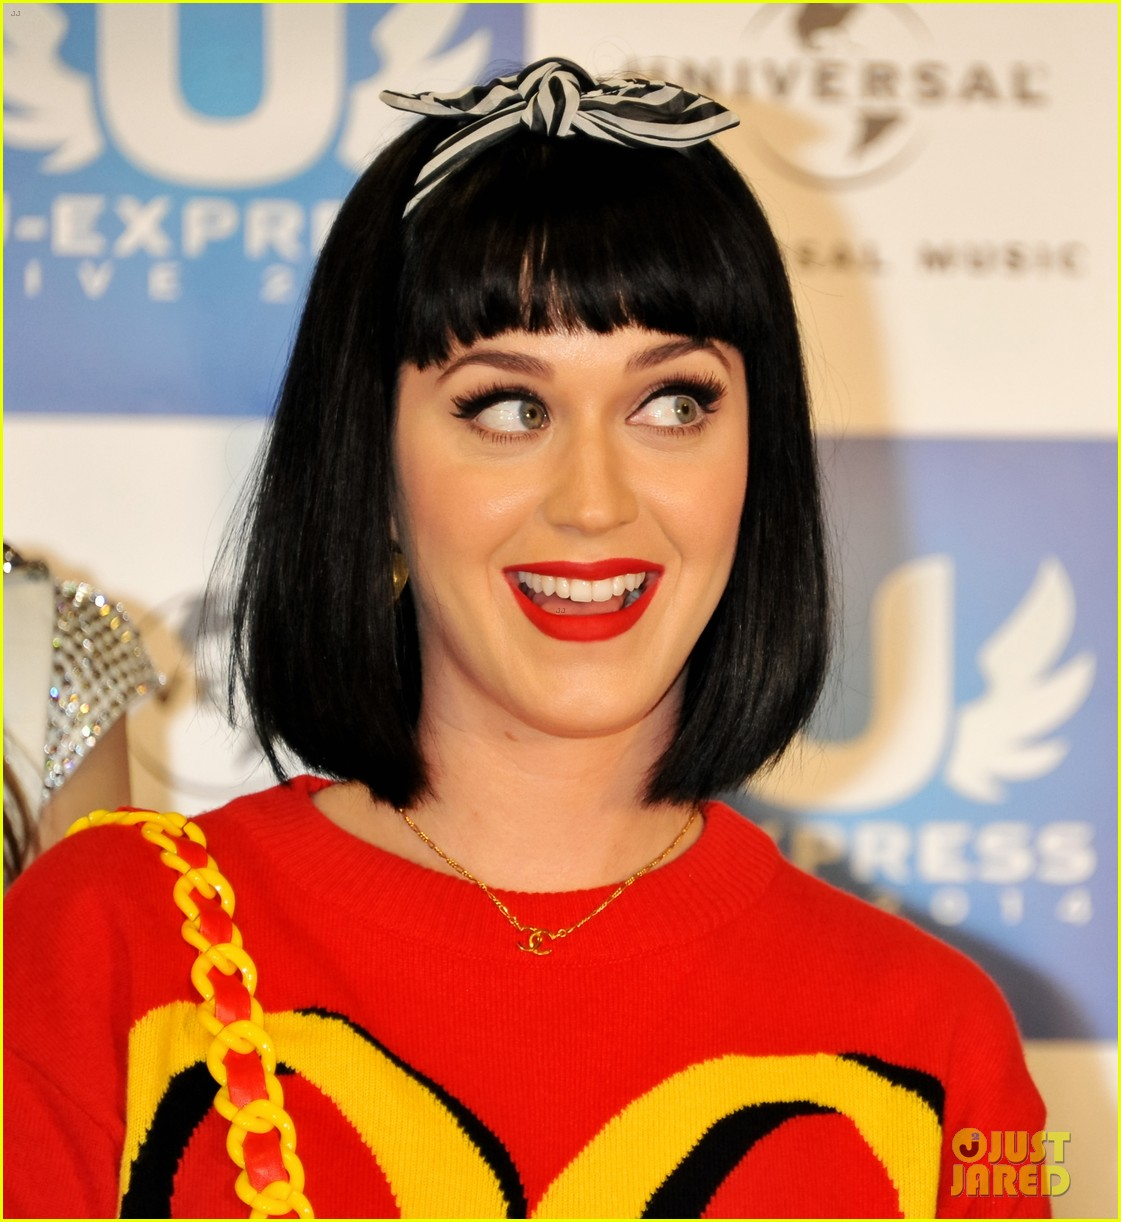 katy perry u express live 2014 press conference japan 013063653